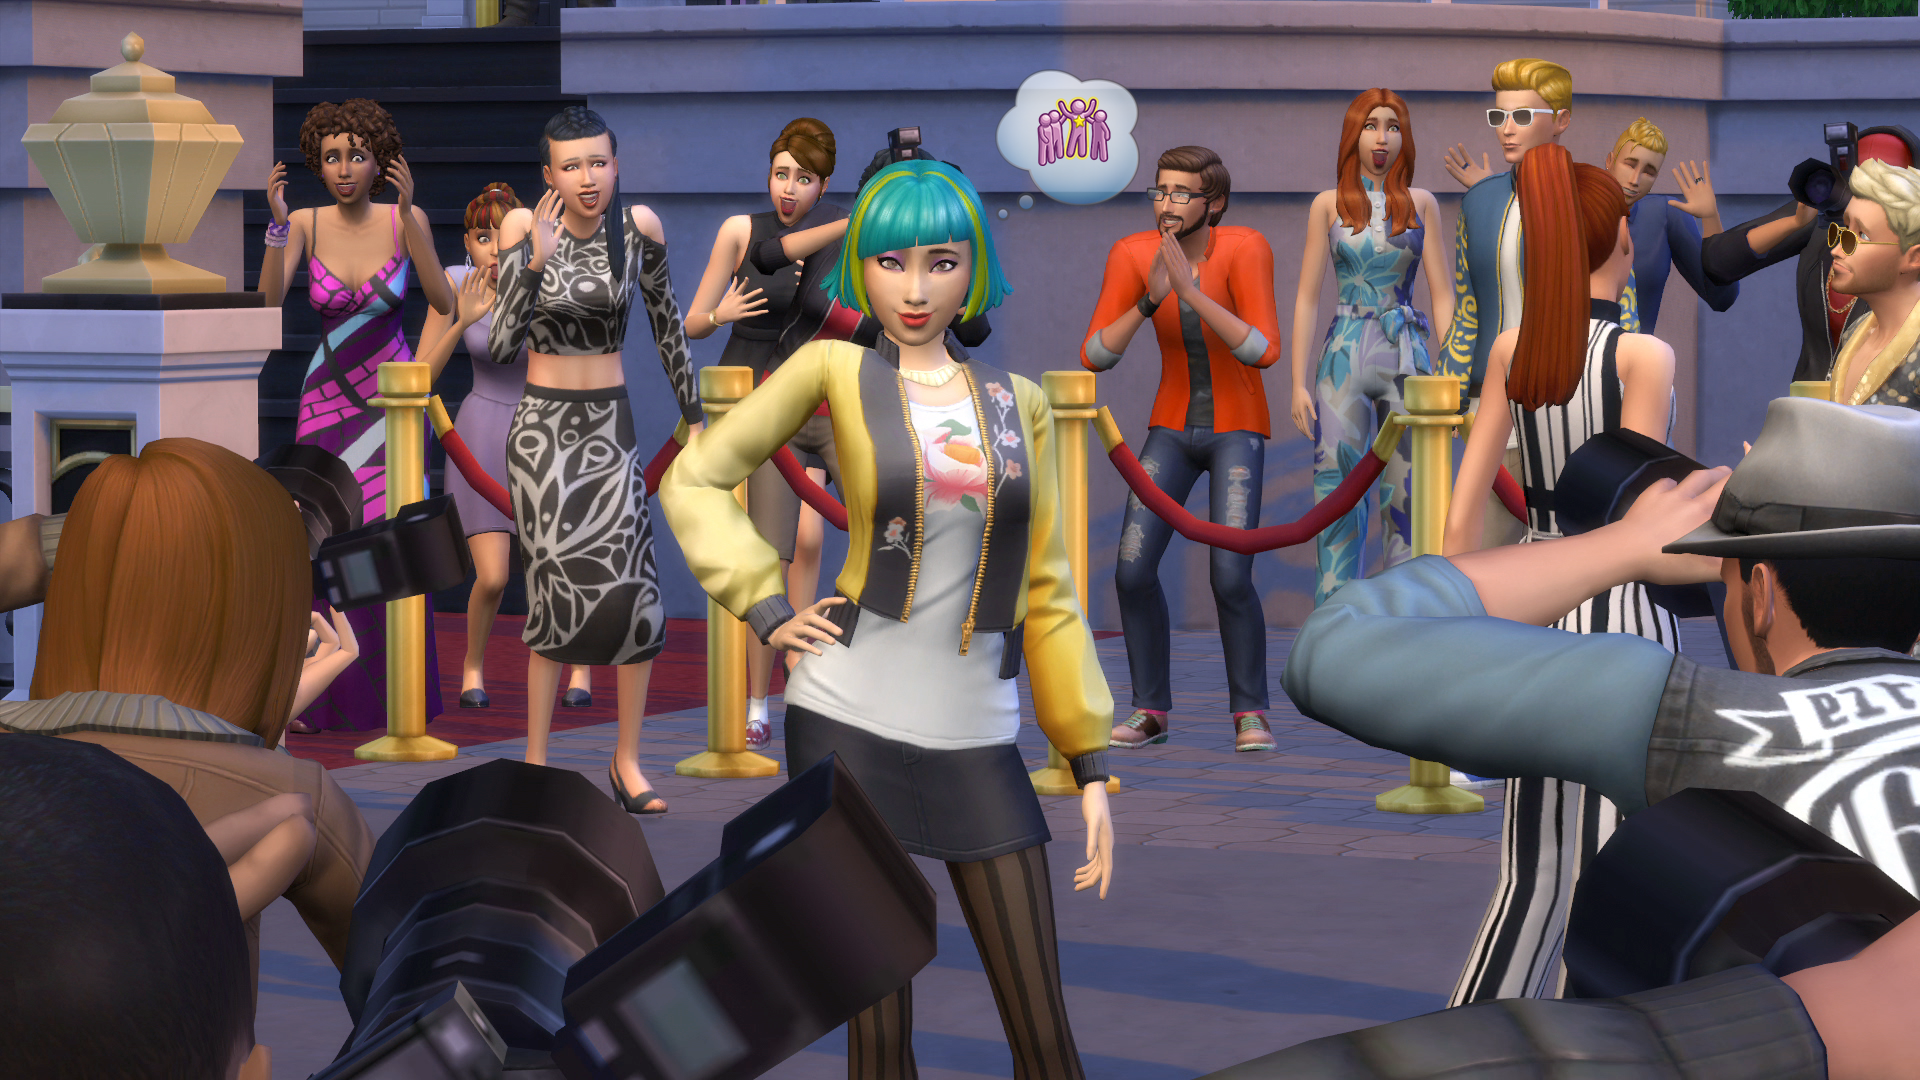 ts4-ep06-reveal-lifts-06-002-1.png